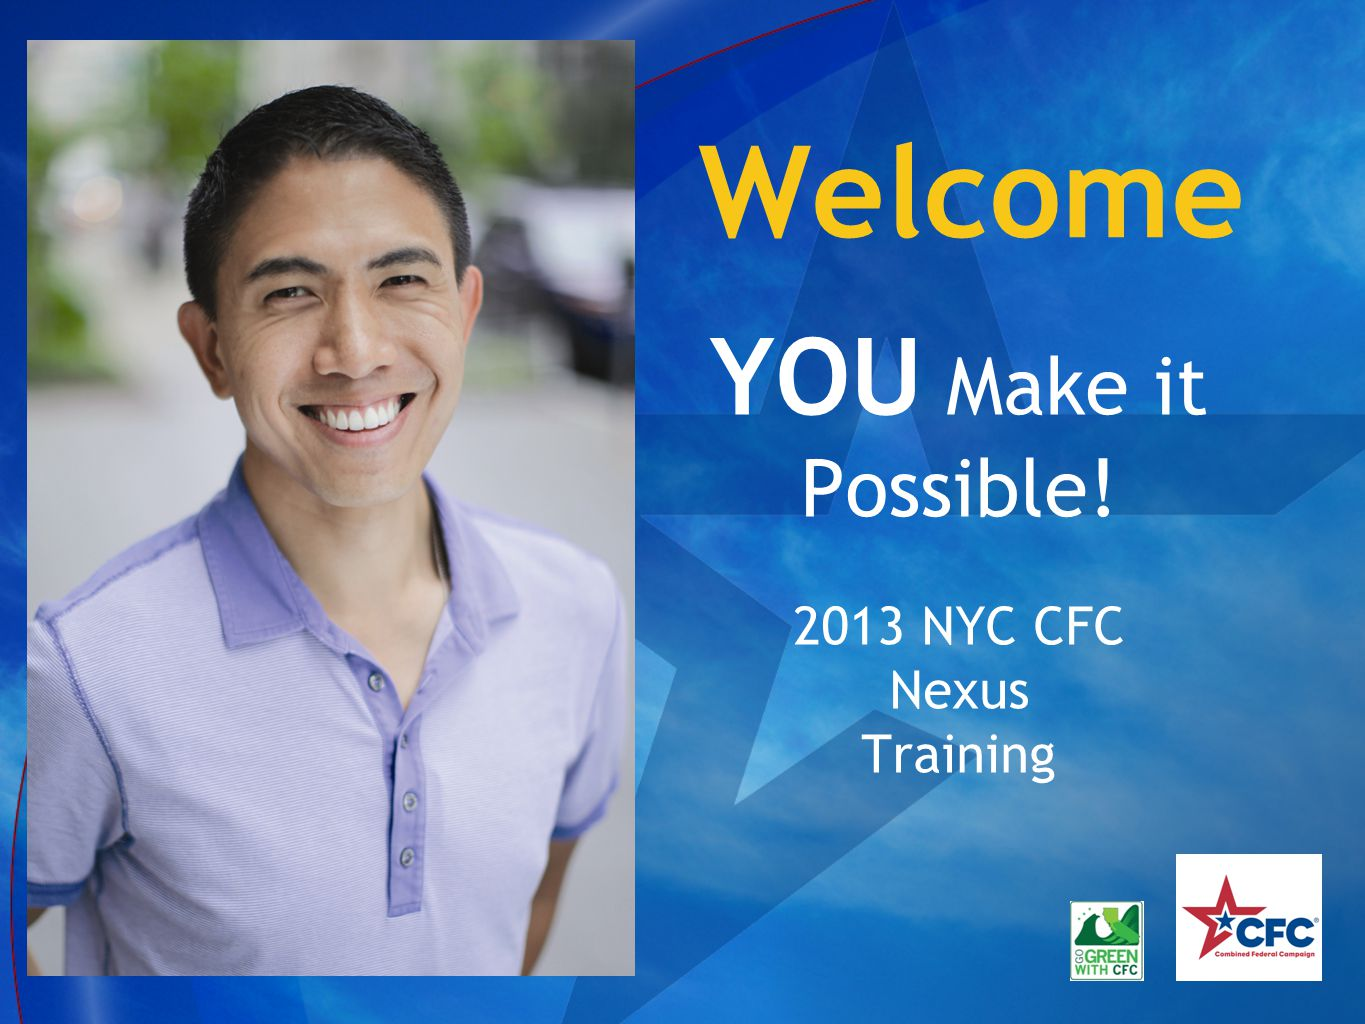 Welcome YOU Make it Possible! 2013 NYC CFC Nexus Training